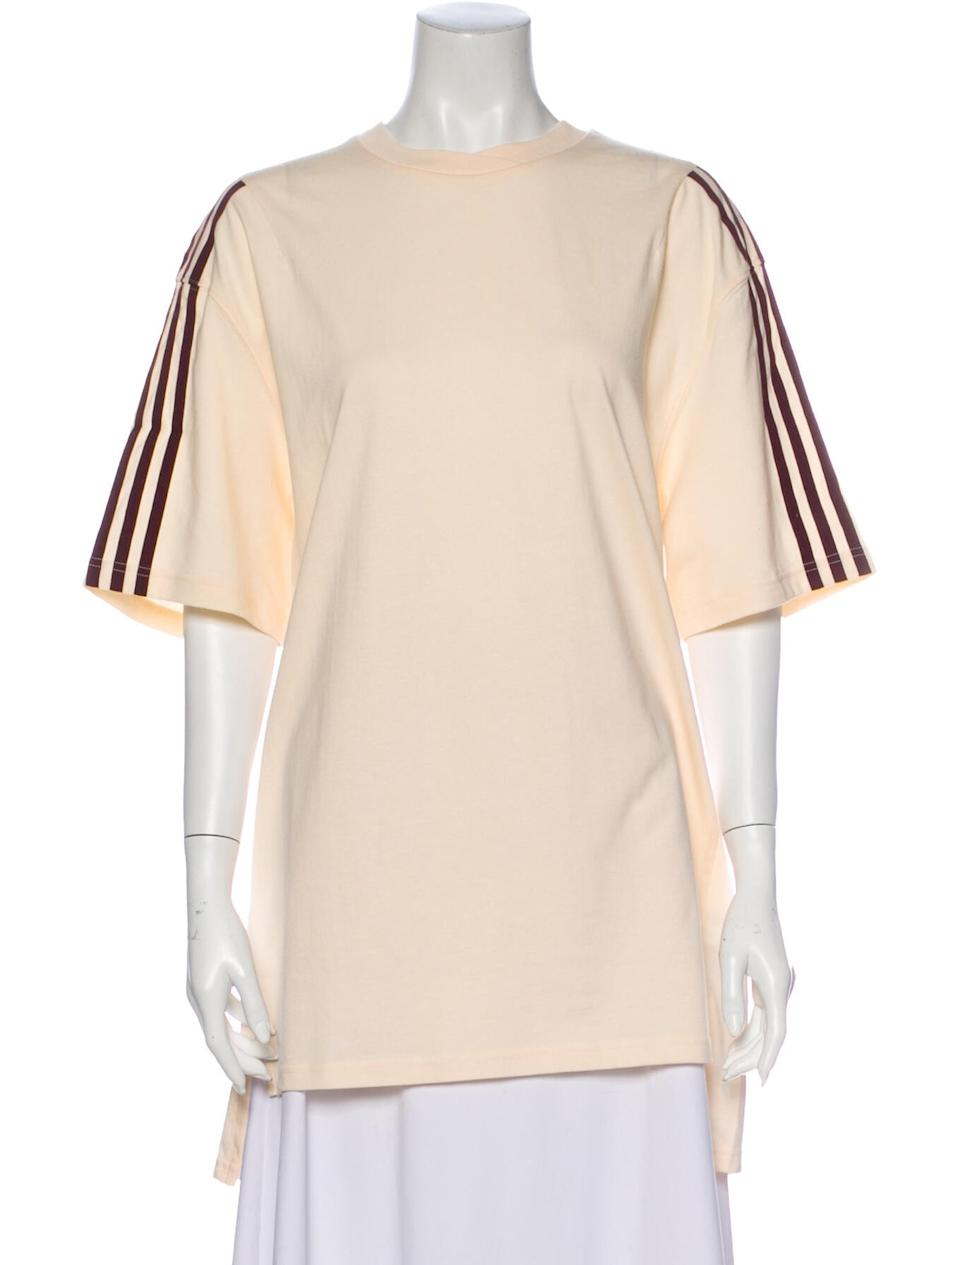 """<br><br><strong>adidas x Ivy Park</strong> Striped Bateau Neckline T-Shirt, $, available at <a href=""""https://go.skimresources.com/?id=30283X879131&url=https%3A%2F%2Fwww.therealreal.com%2Fproducts%2Fwomen%2Fclothing%2Ftops%2Fadidas-x-ivy-park-striped-bateau-neckline-t-shirt-w-tags-7wtxc"""" rel=""""nofollow noopener"""" target=""""_blank"""" data-ylk=""""slk:The RealReal"""" class=""""link rapid-noclick-resp"""">The RealReal</a>"""